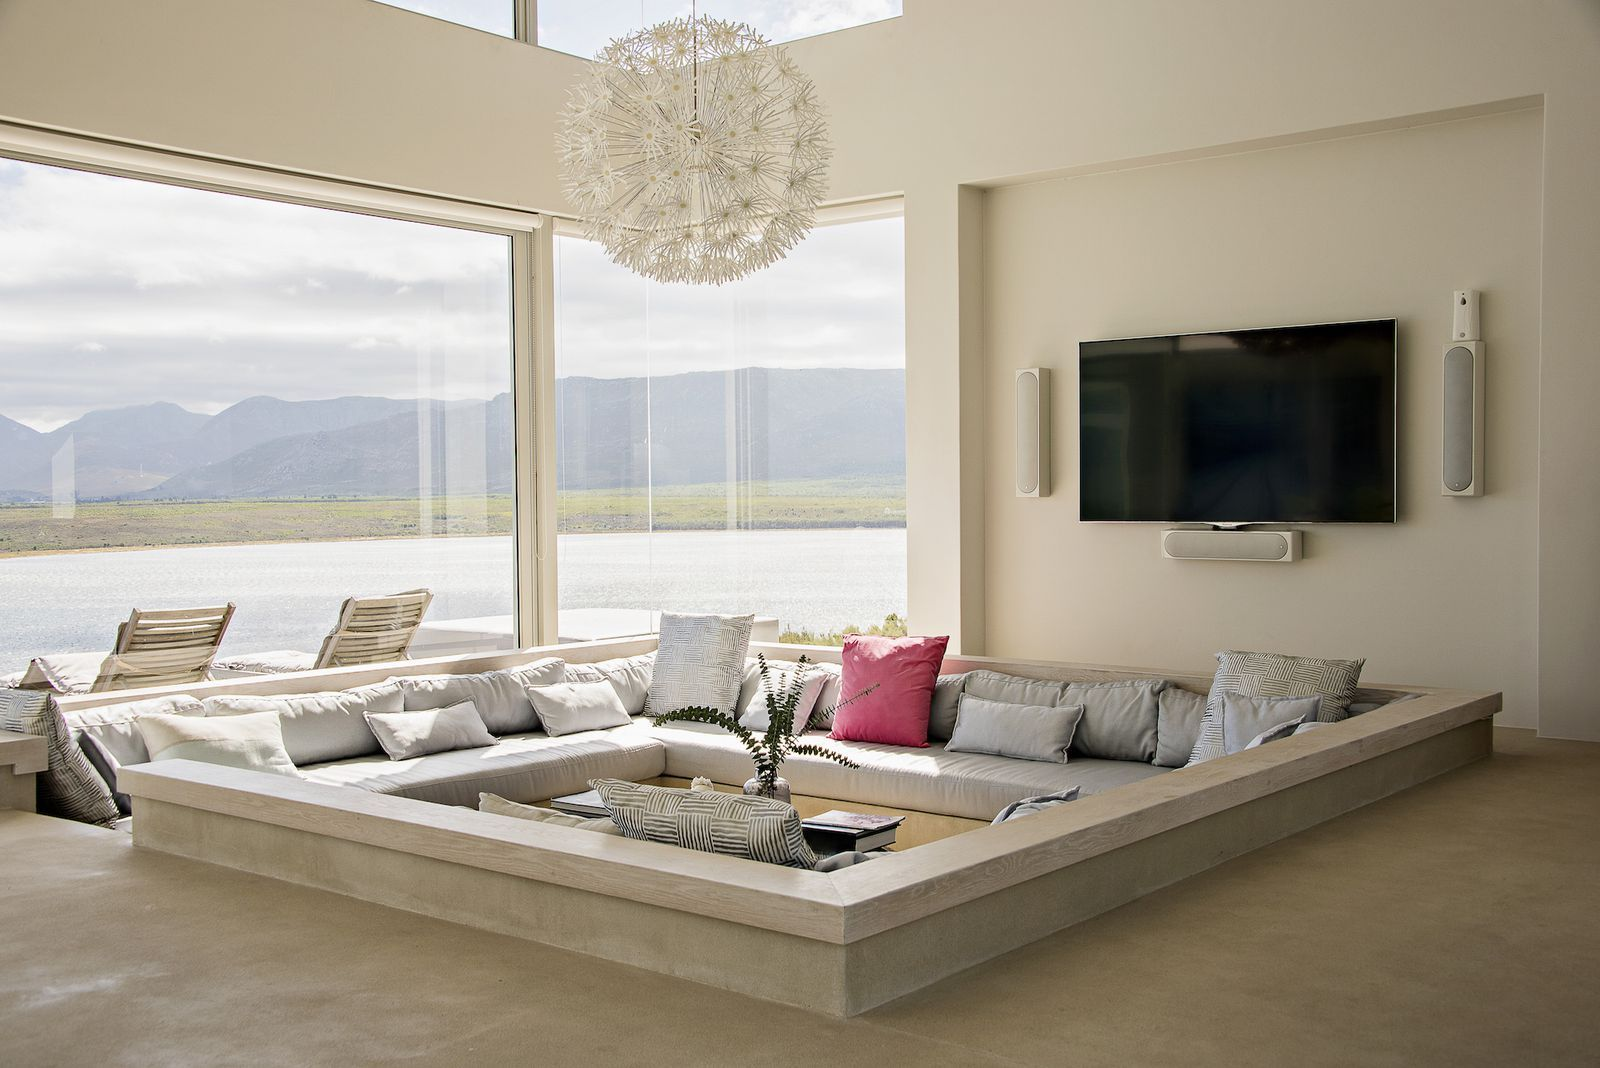 Living Room Vs Family Room Is There A Difference Kid Friendly Living Room House Interior Design Living Room Kid Friendly Living Room Furniture